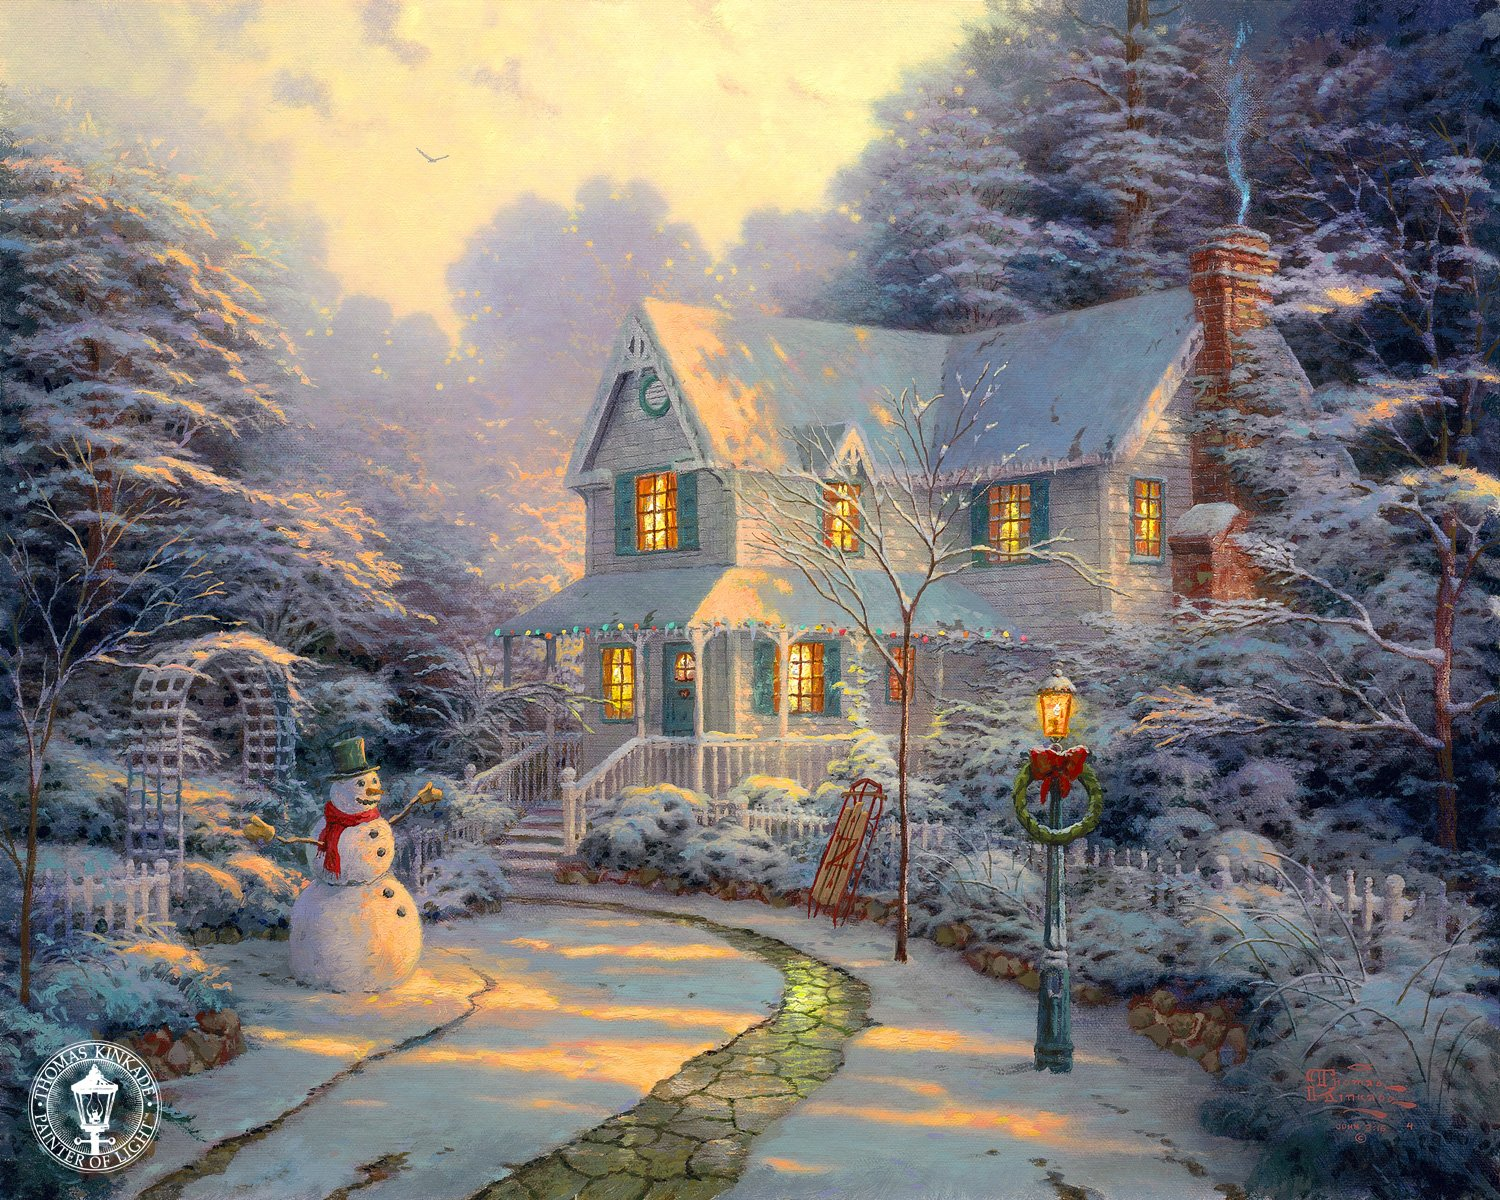 He has paintings of all different scenes. The nice cozy winter scenes: